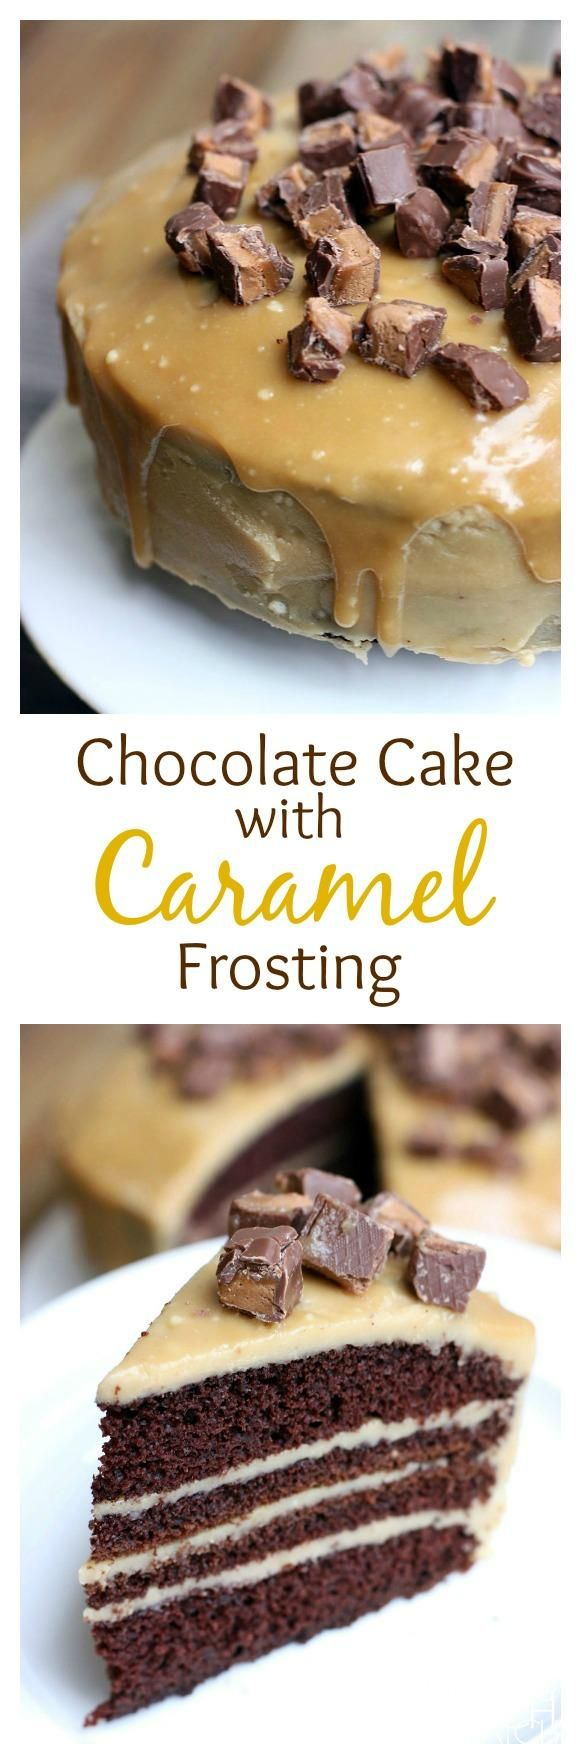 Cake : Milky Way on Pinterest | Milky Way Cake, Milky Way and Caramel ...